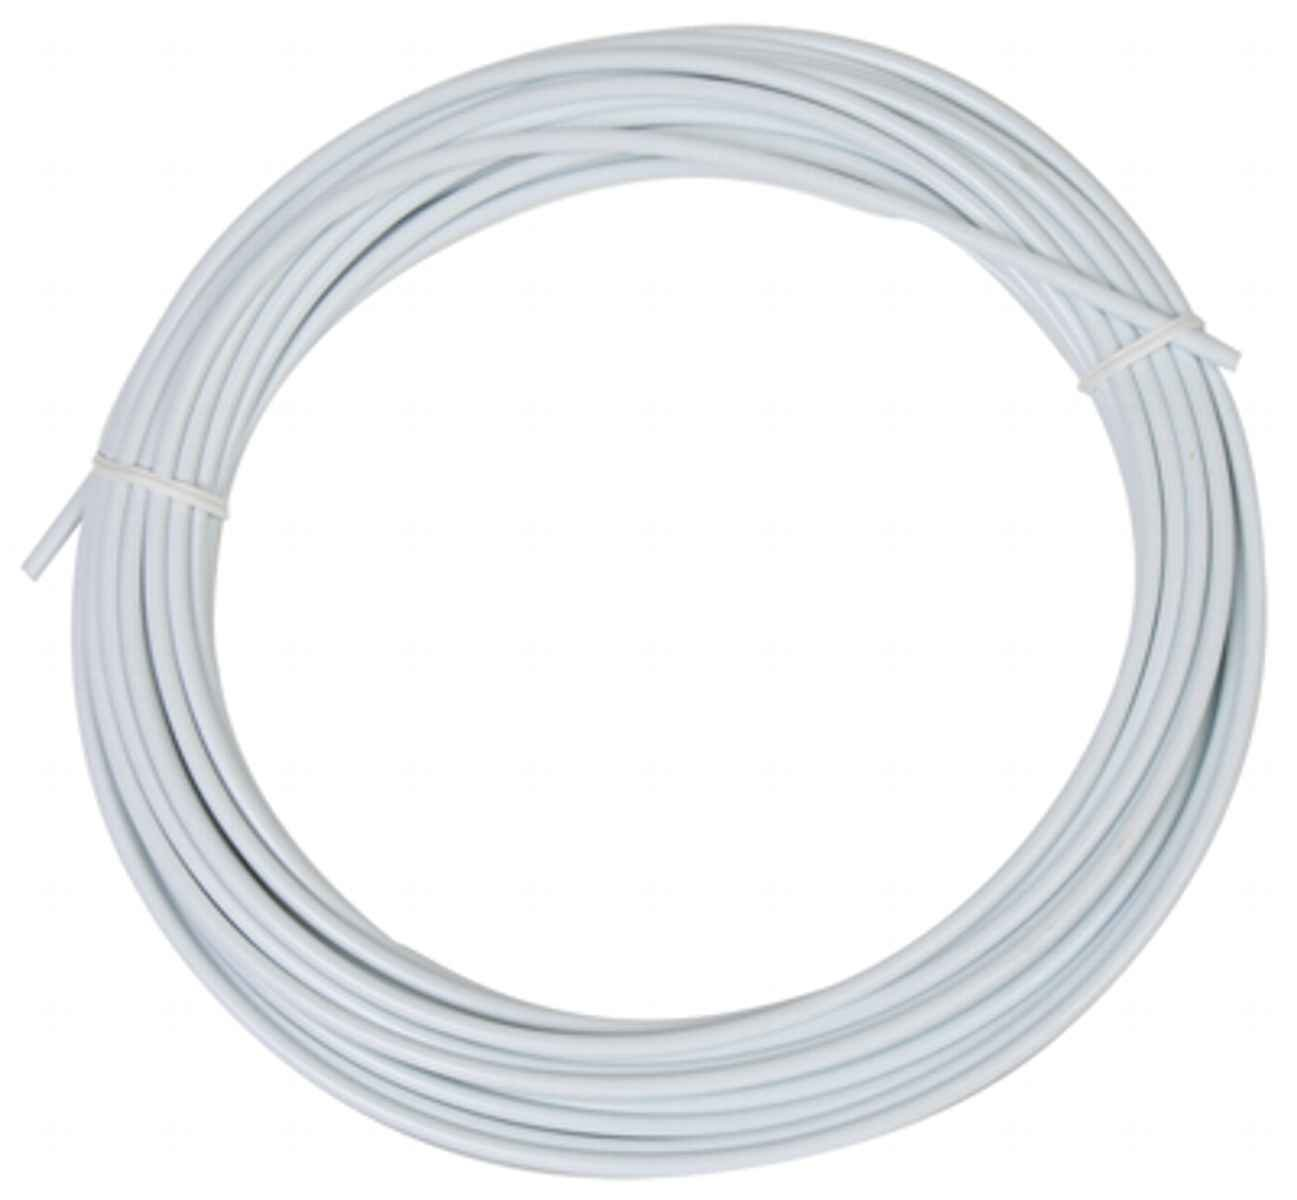 Sunlite Lined Brake Cable Housing, 5mm x 50ft, Weiß